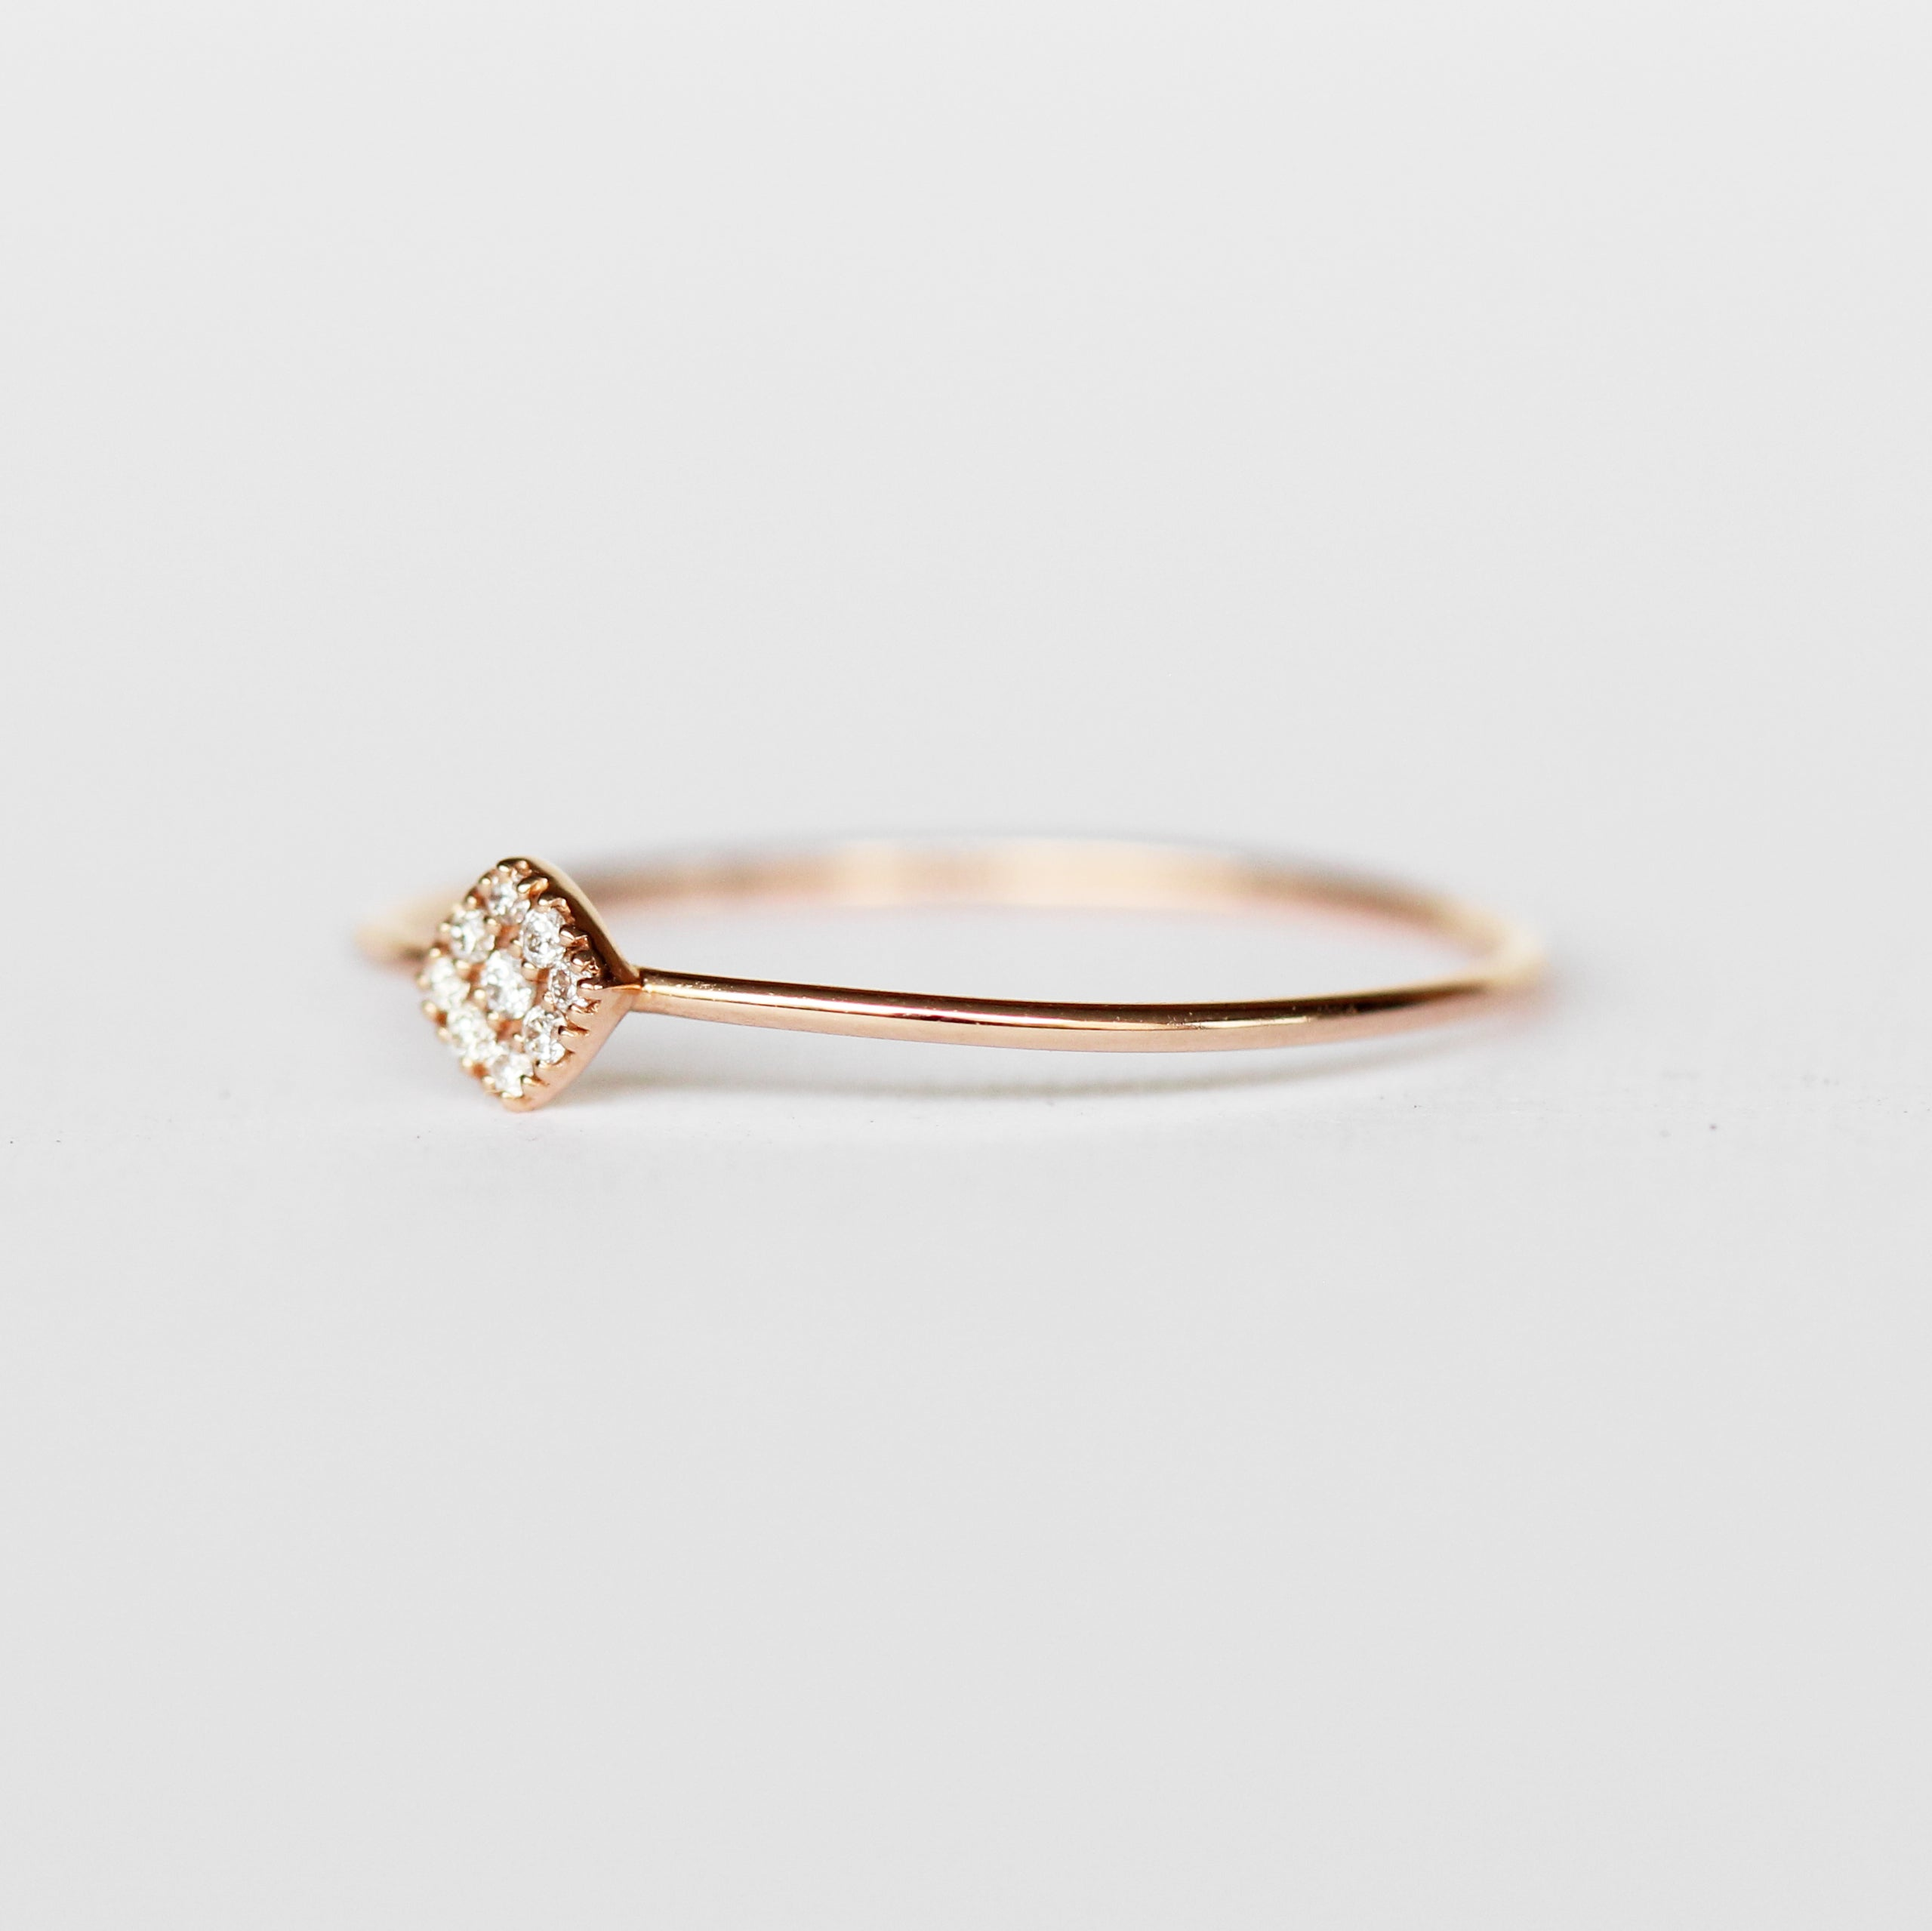 Bloom Diamond Band Stackable Ring in 14k Rose Gold - Ready to Size and Ship - Celestial Diamonds ® by Midwinter Co.